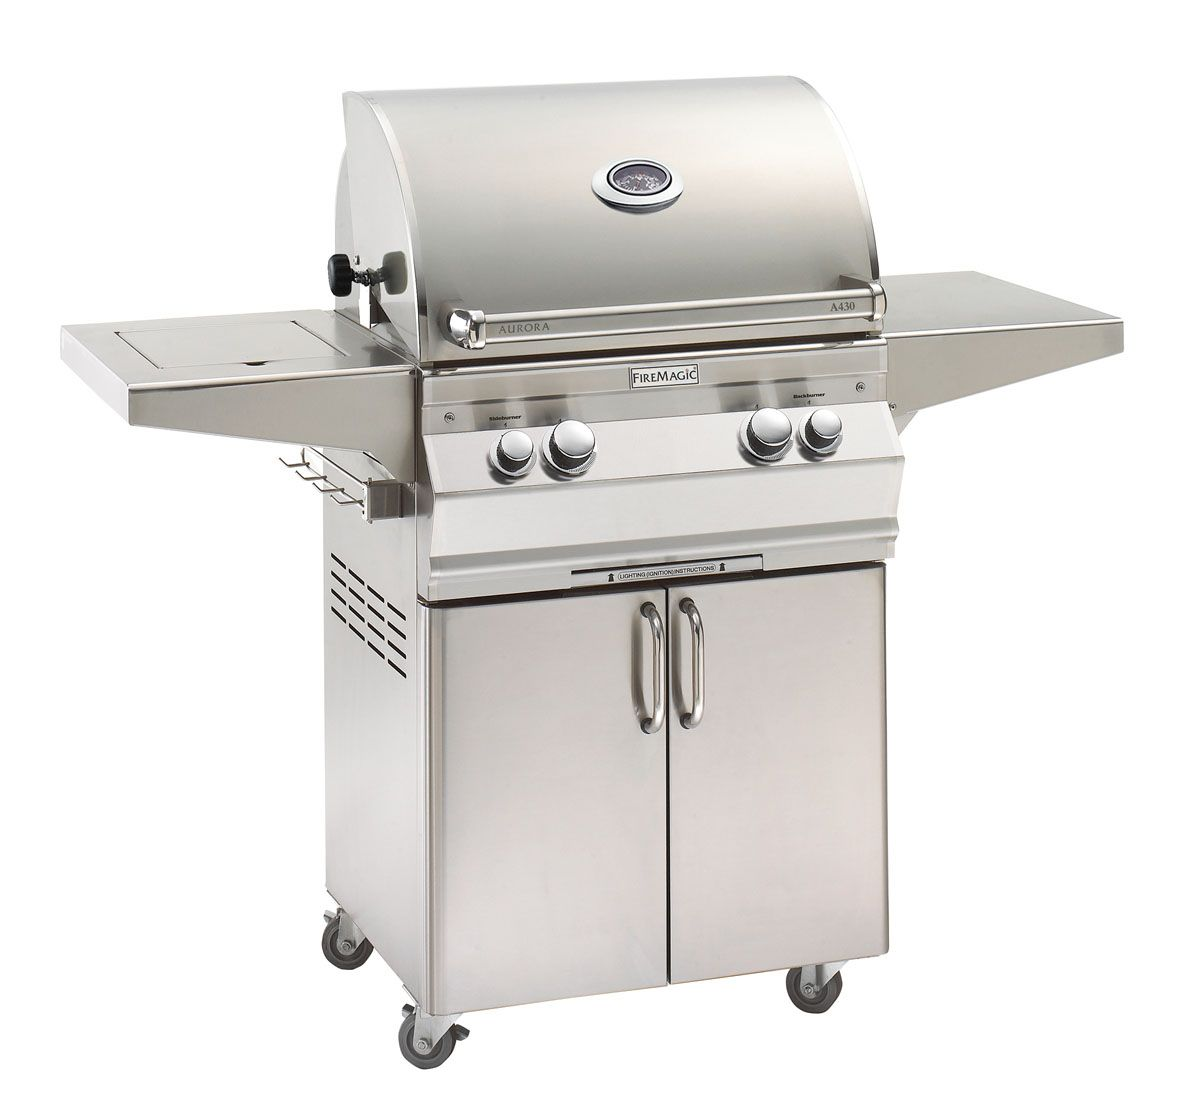 """Fire Magic A430S-8LAN-62 Aurora A430S 24"""" Freestanding Natural Gas Grill With Side Burner  One Infrared Burner Rotisserie And Analog Thermometer"""